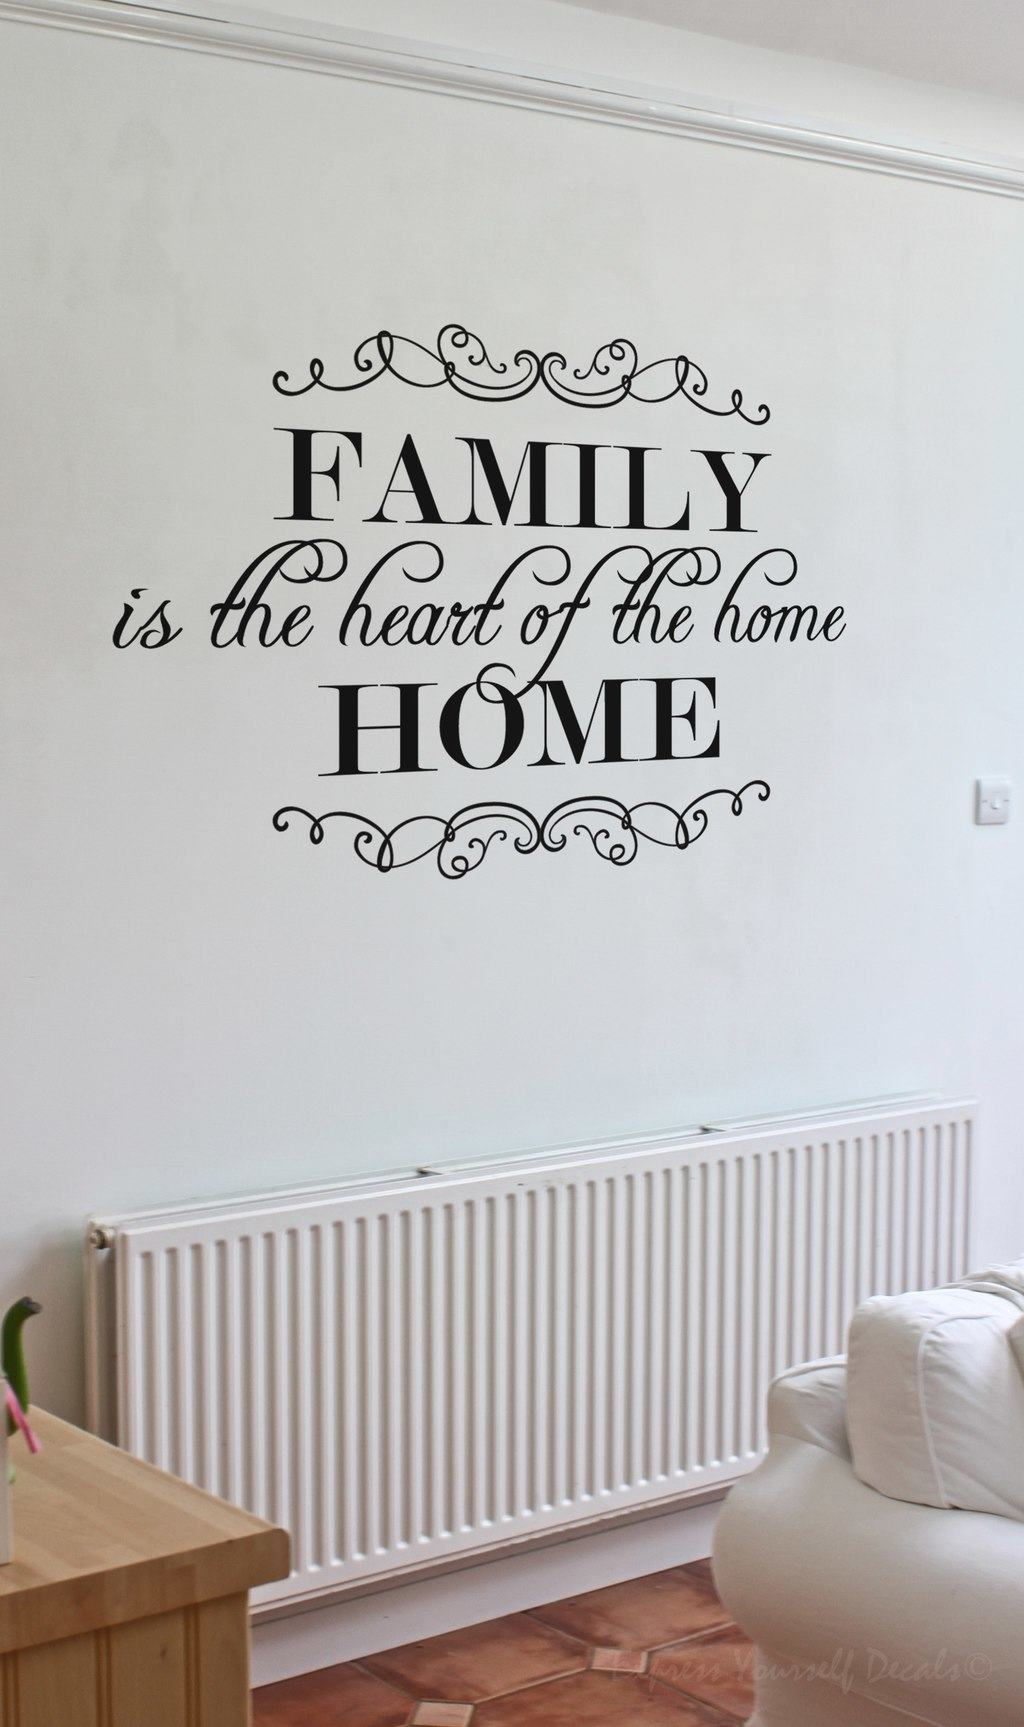 Home Wall Decals is the heart of the home wall decal